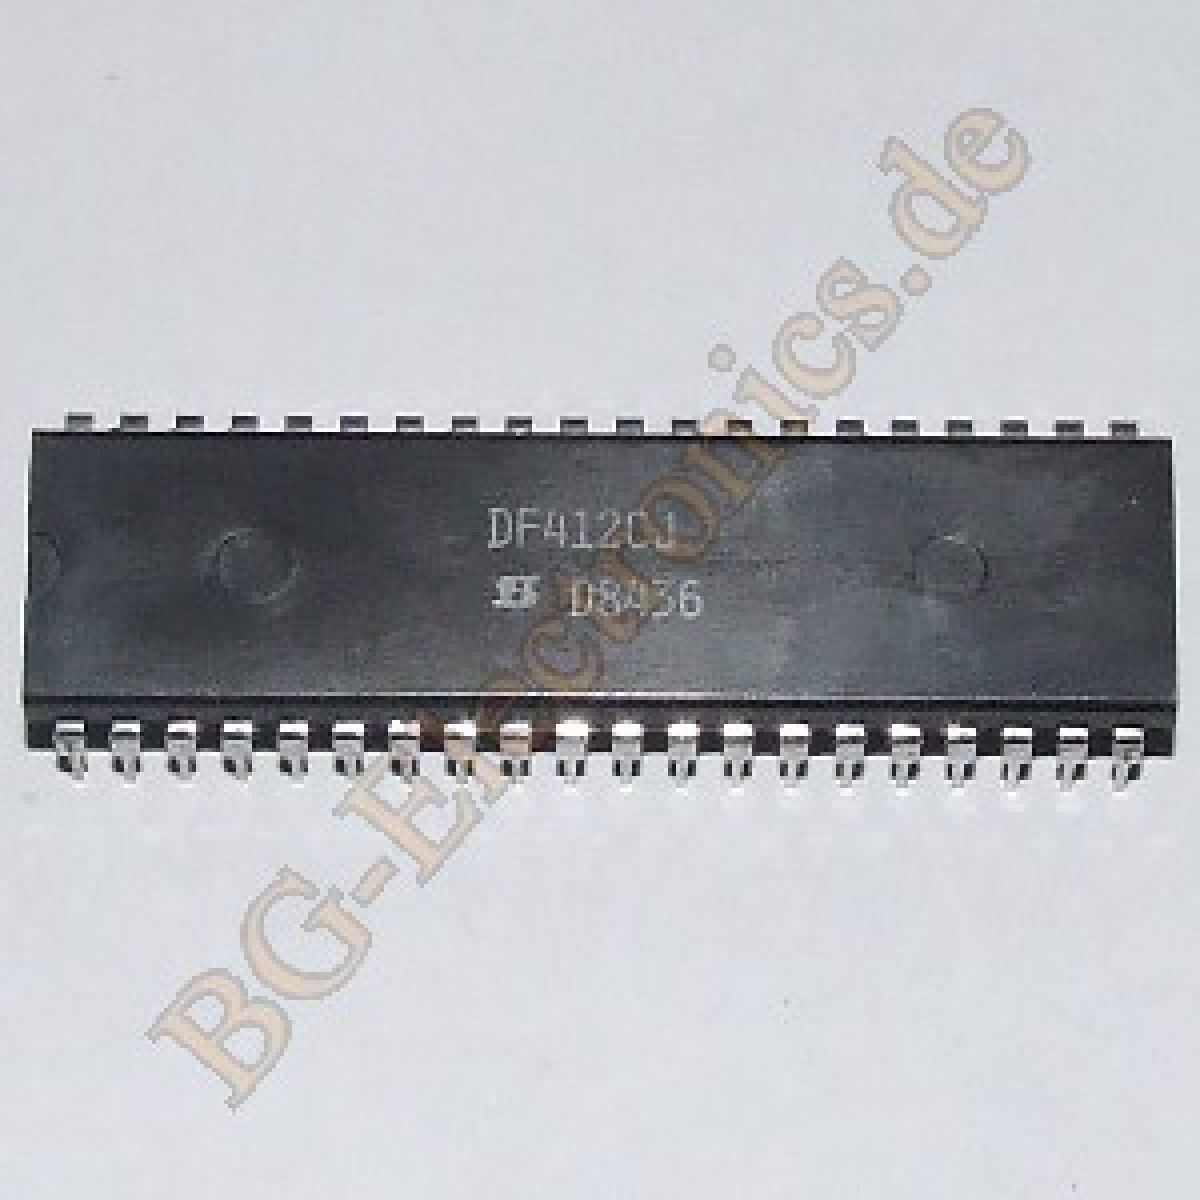 1-x-DF412CJ-7-Segment-Display-Driver-with-Decoder-Siliconi-DIP-40-1pcs